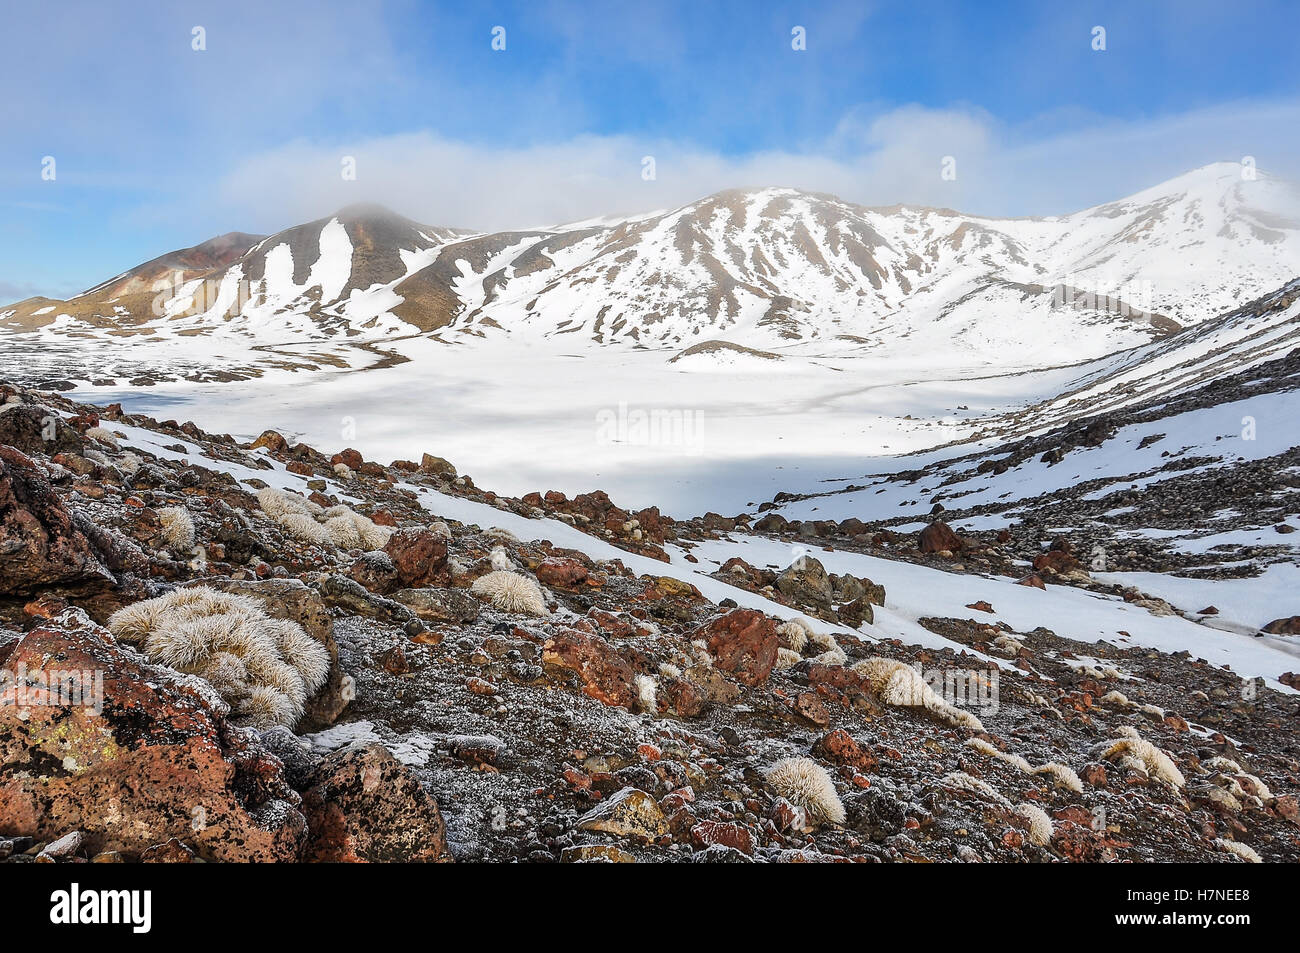 View of Central Crater in the winter Tongariro Alpine Crossing, New Zealand - Stock Image